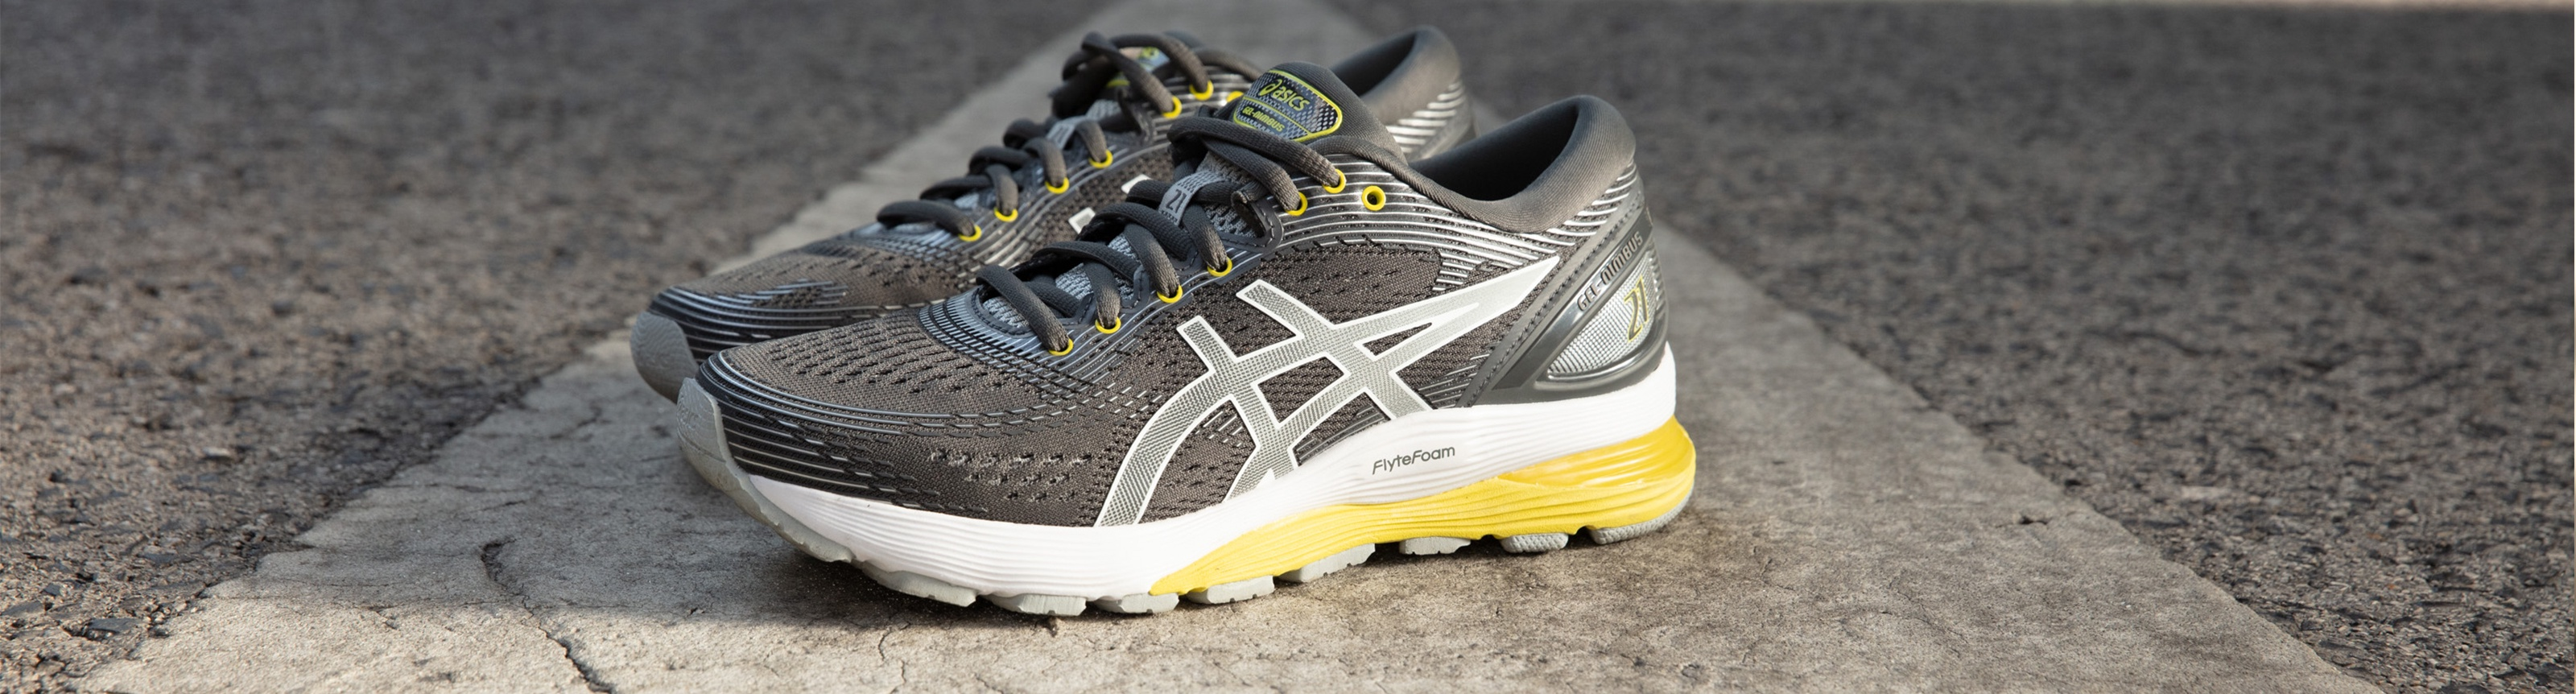 a012a315caad6 Grey and Yellow Gel-Nimbus 21 running shoes sitting on the ground